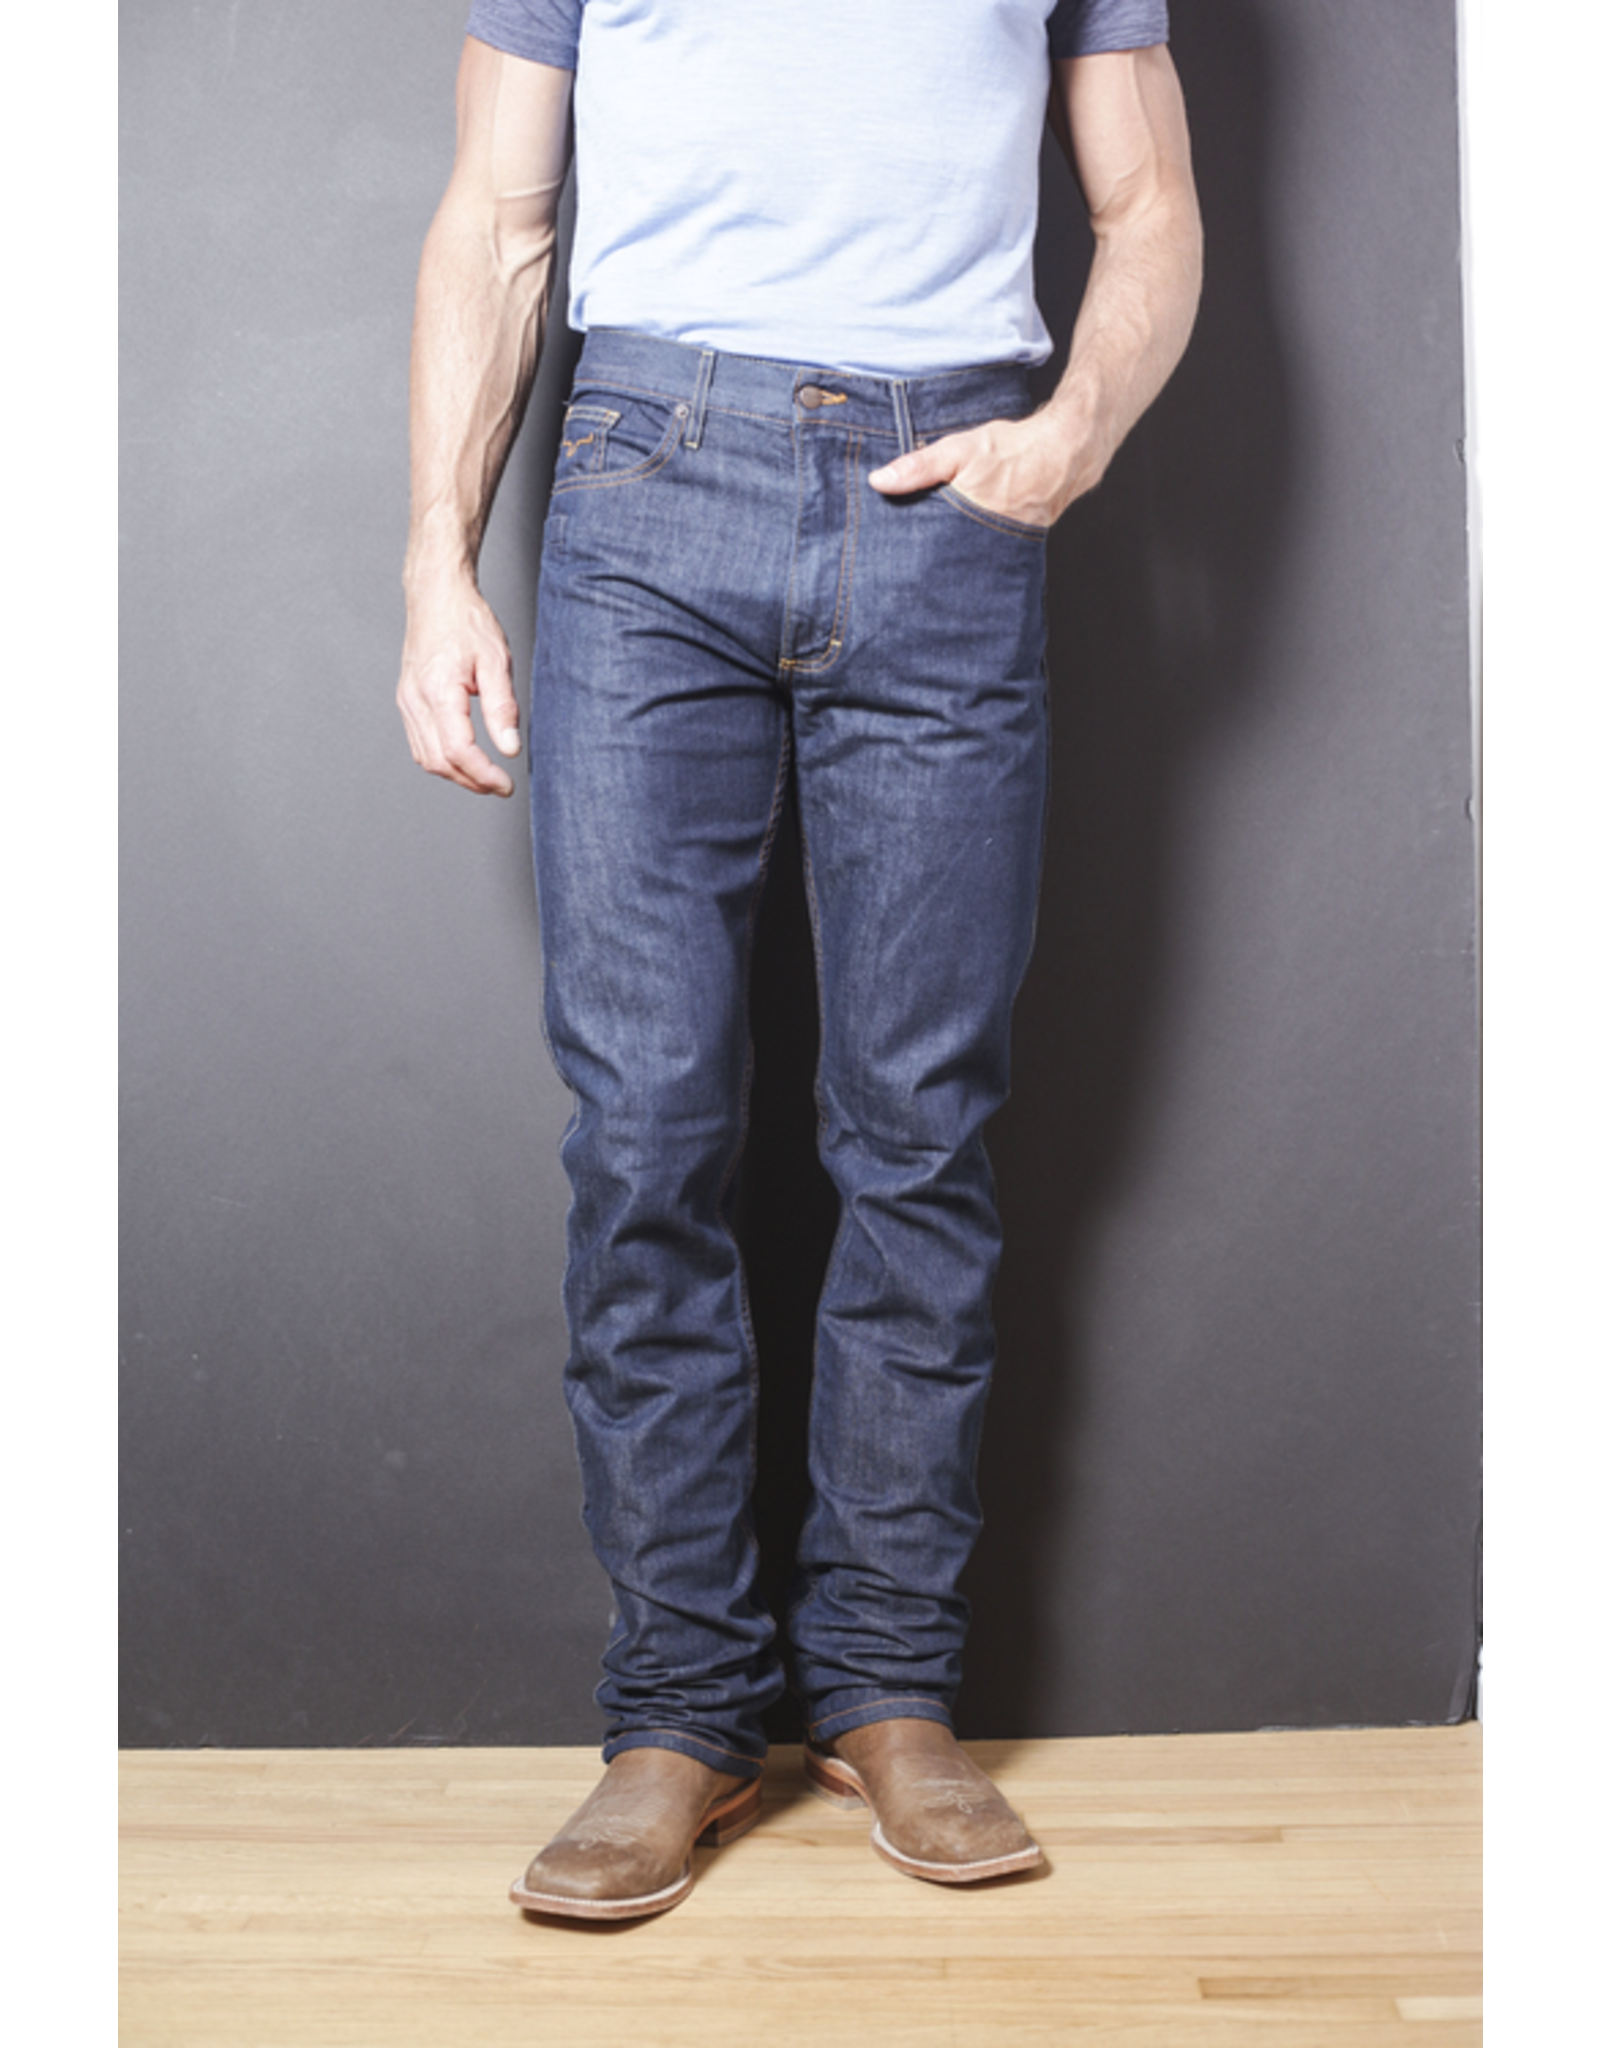 Jeans-Men KIMES RANCH Cal Made In USA